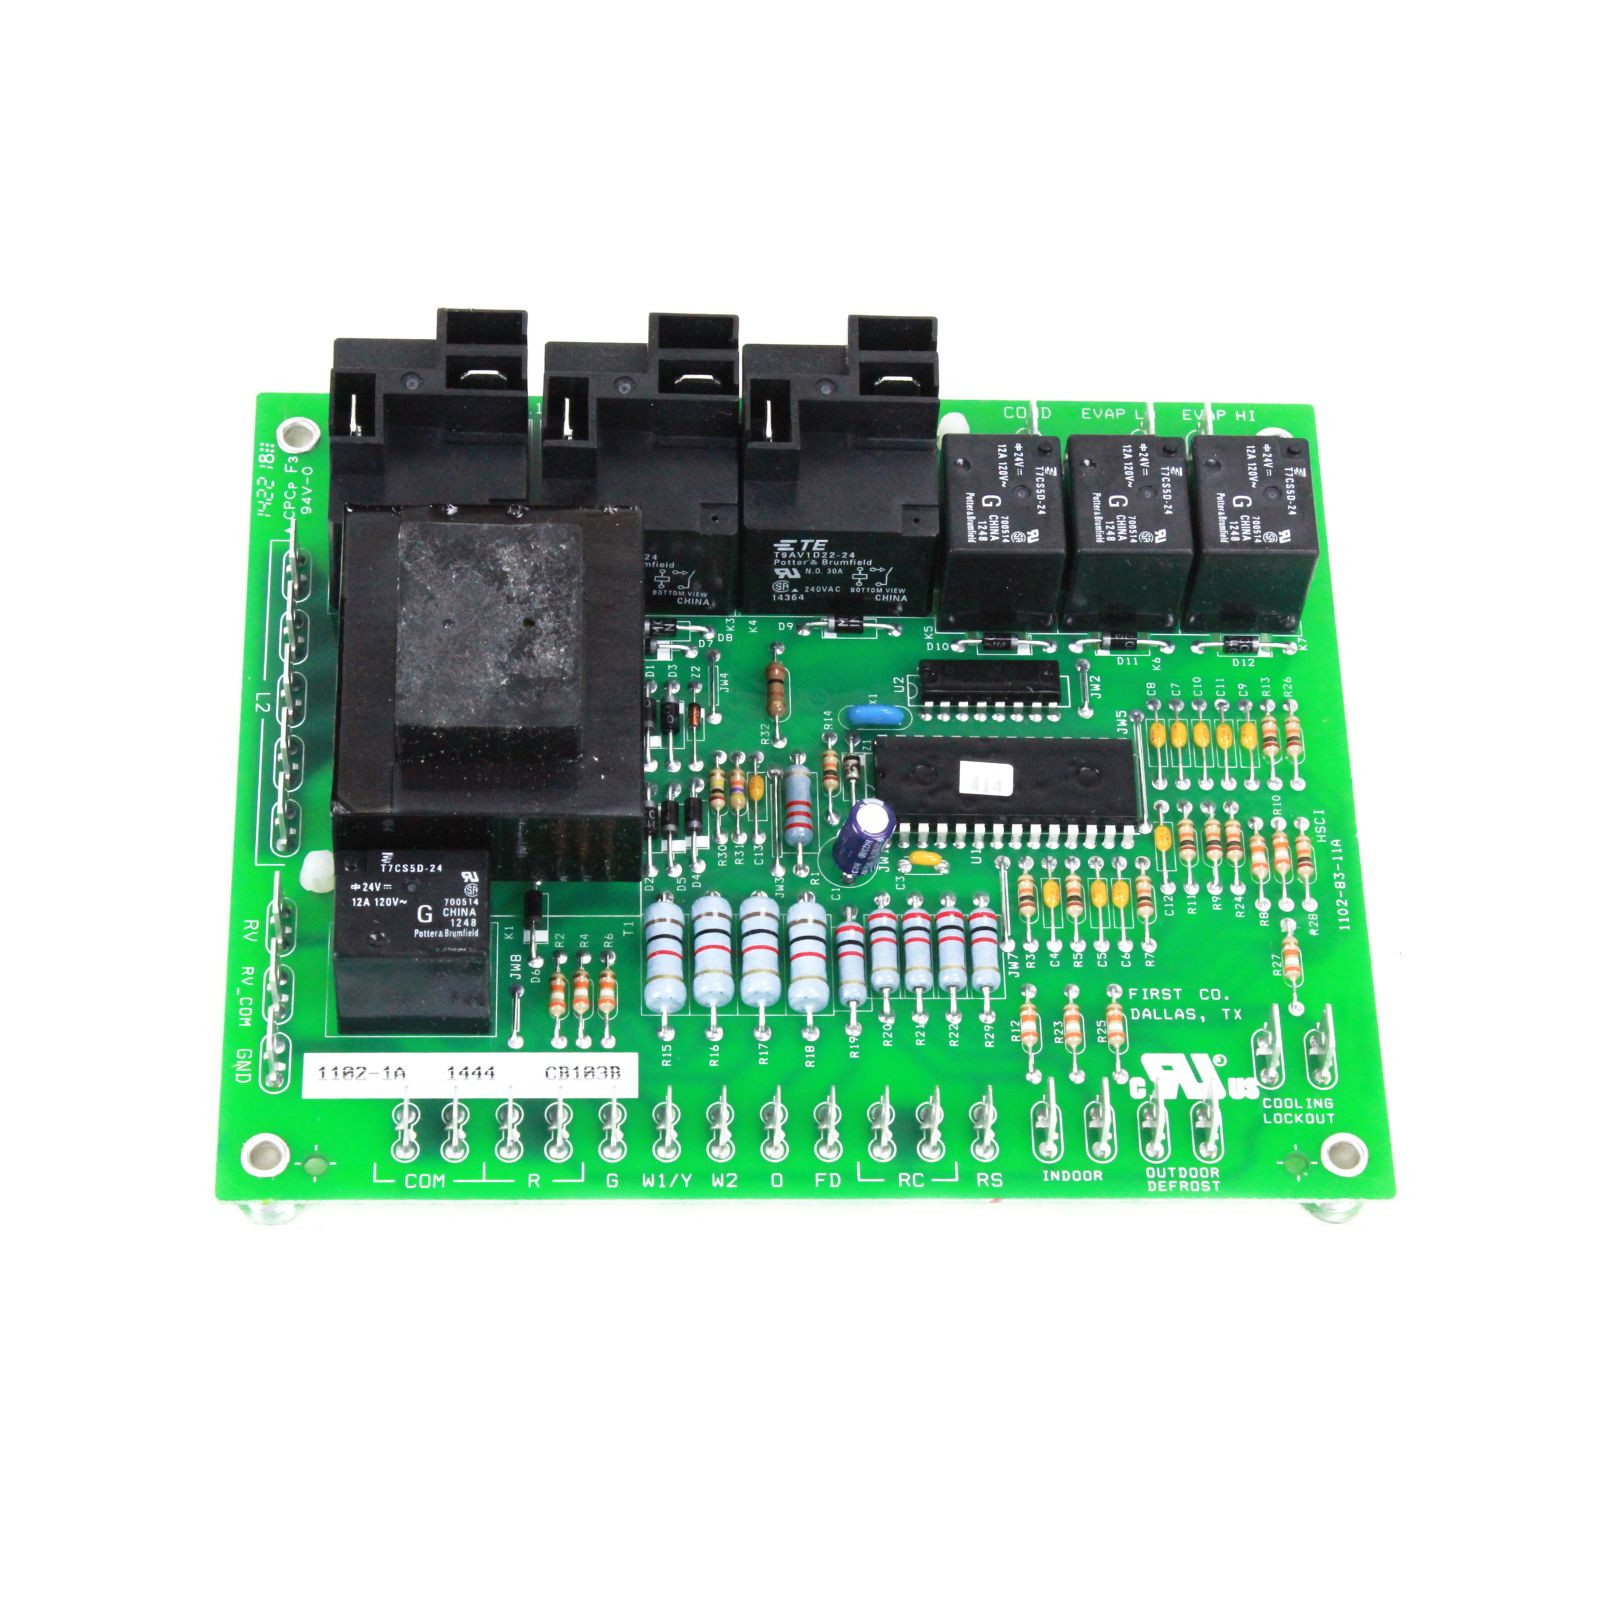 First Co 919-17 -  Circuit Board